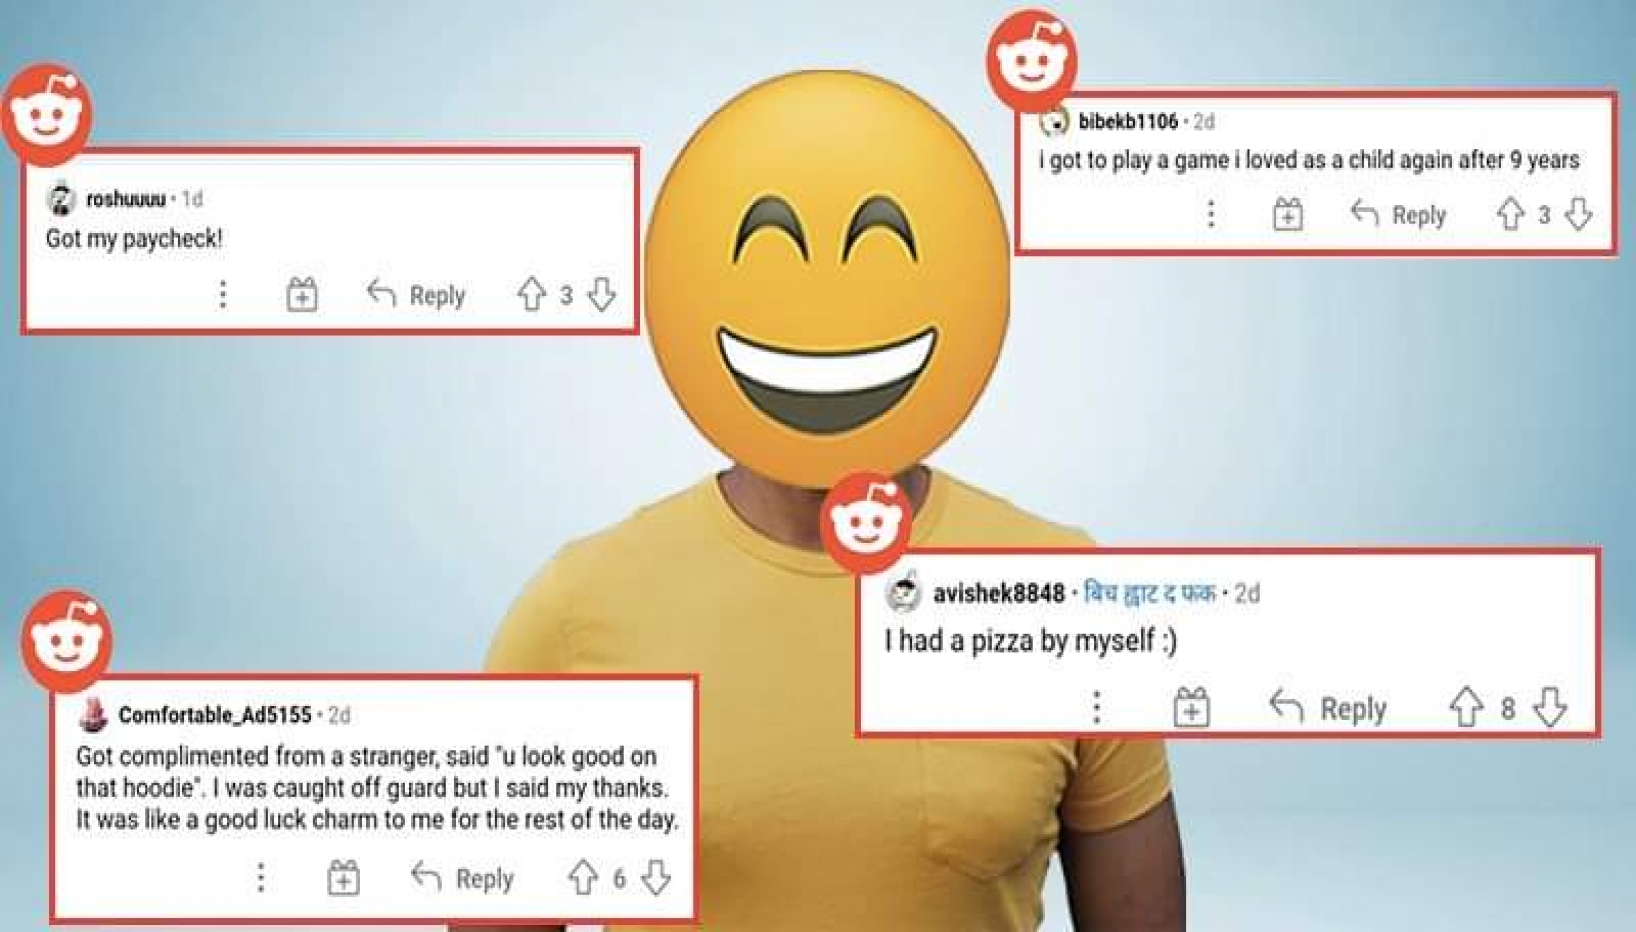 Little Things That Count; Nepali Redditors Share What Brightened Up Their Day